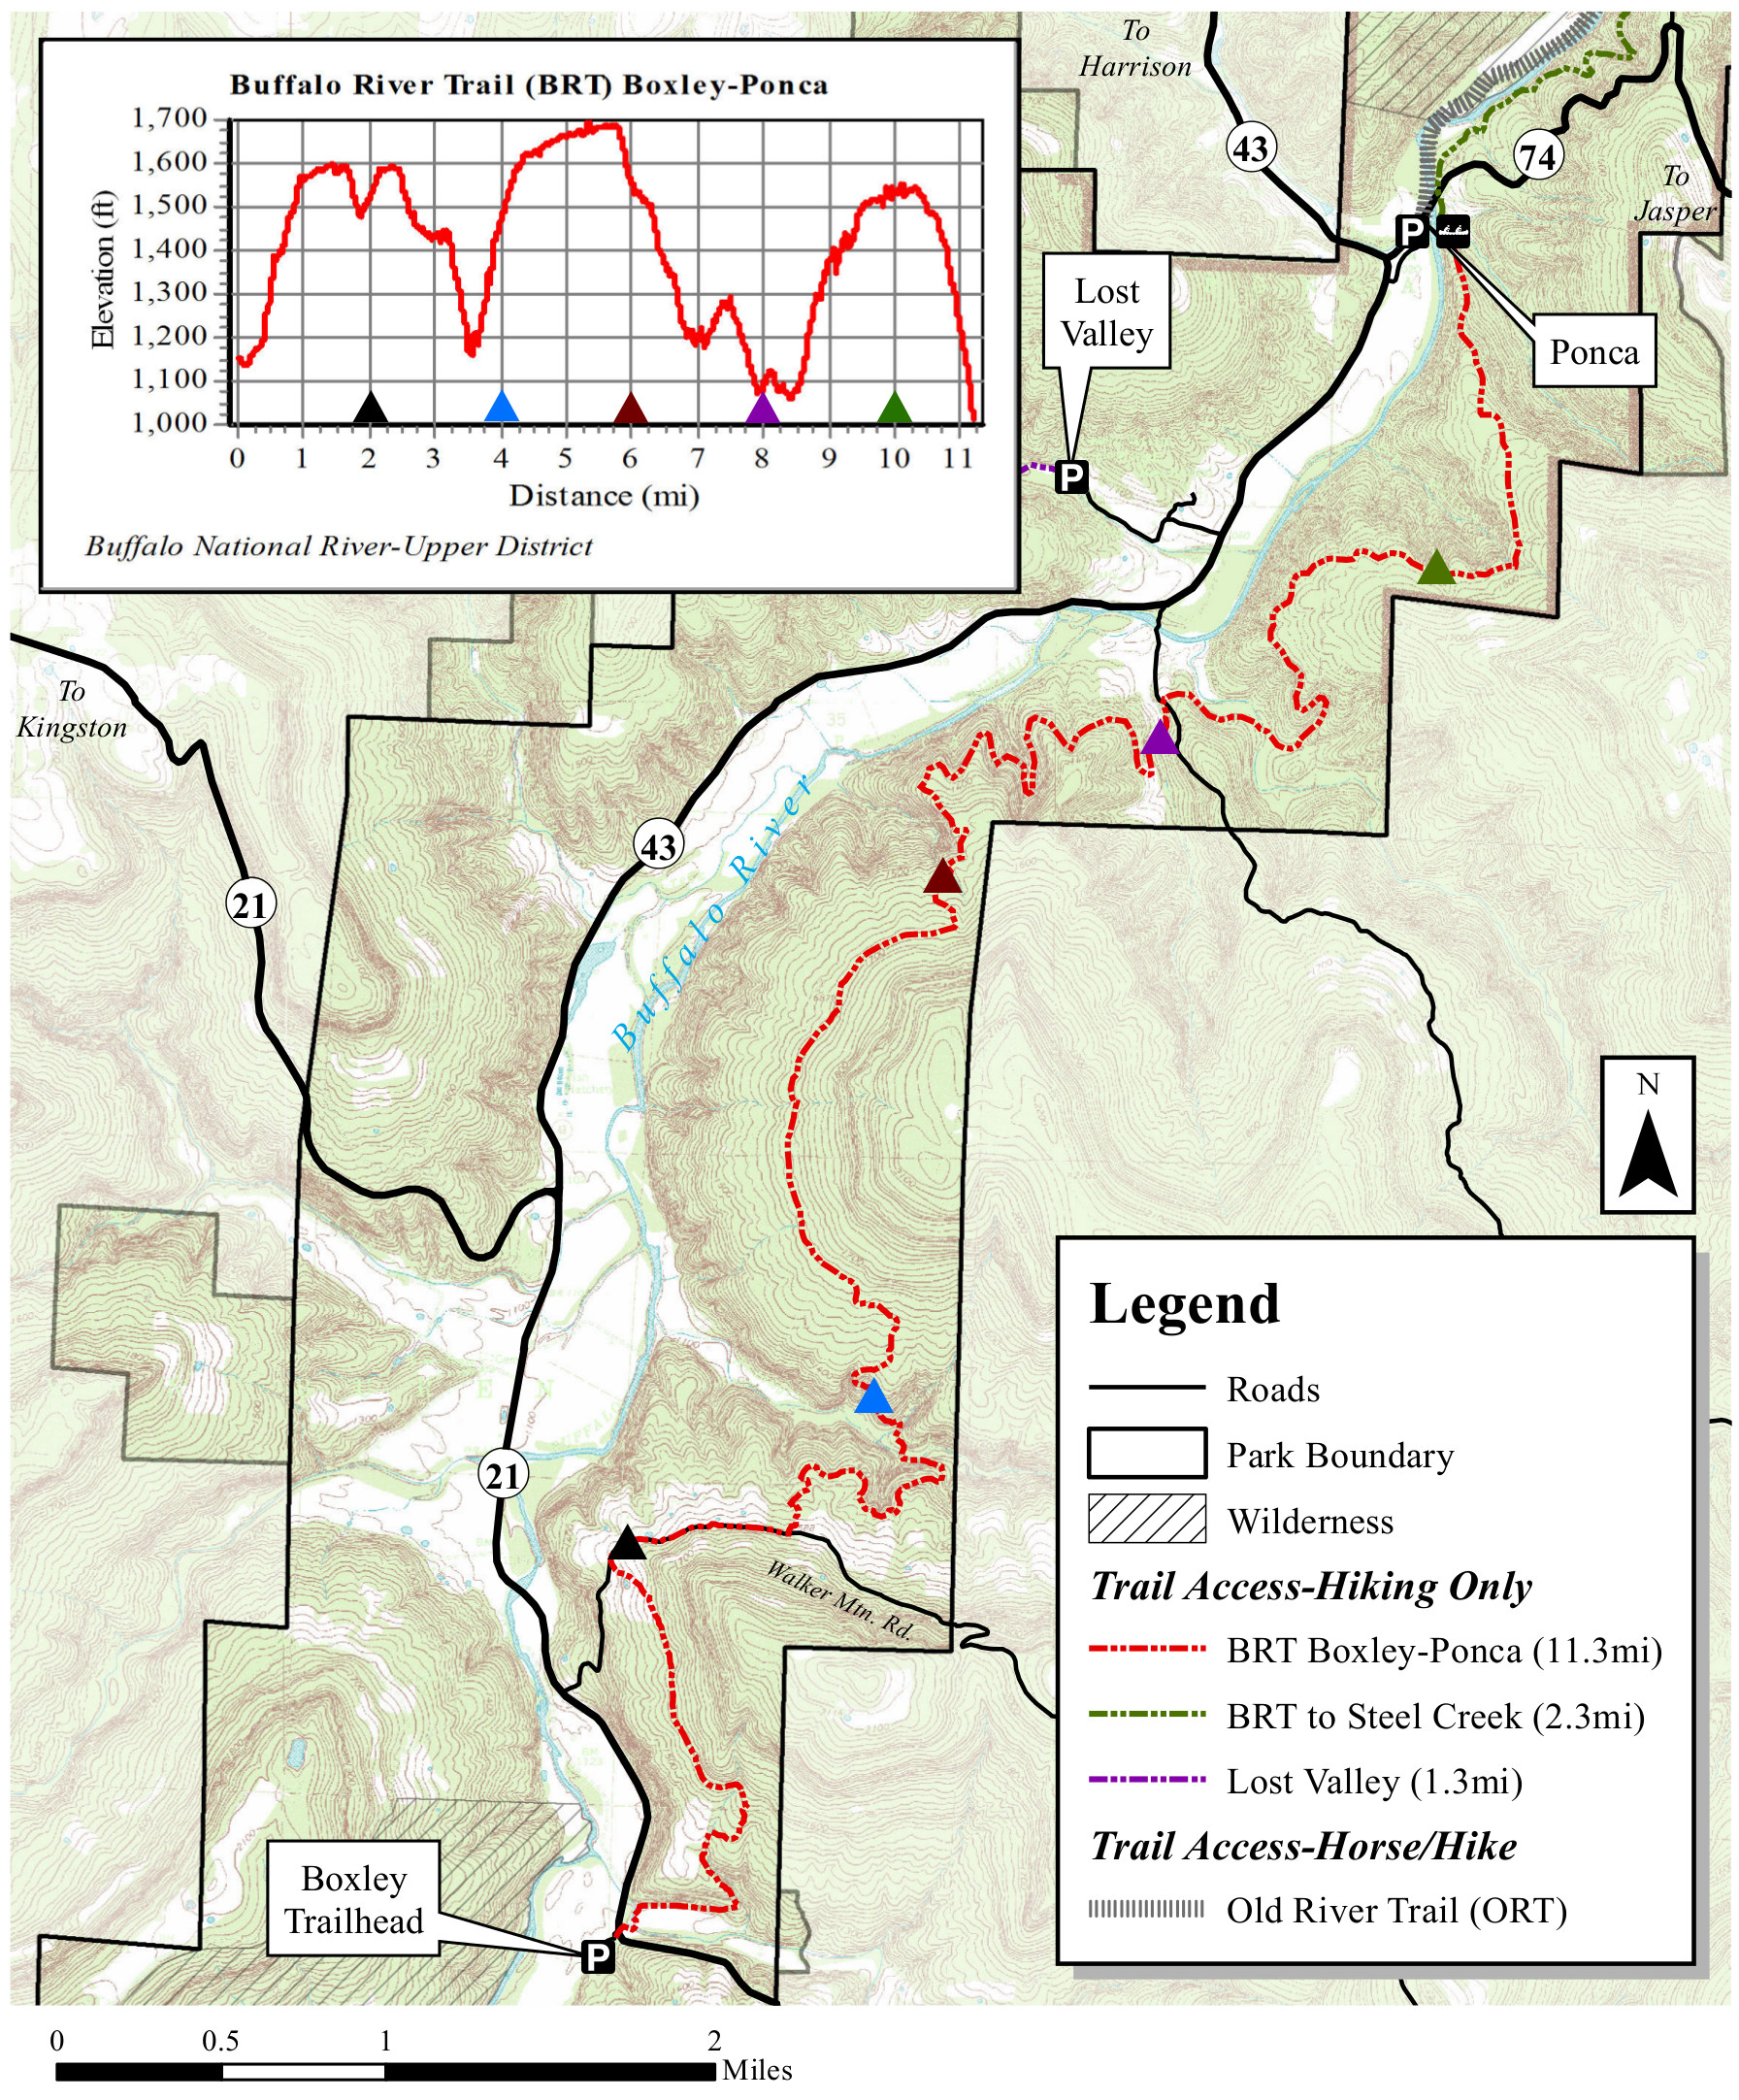 buffalo river trail map boxley to ponca. buffalo river maps  npmapscom  just free maps period